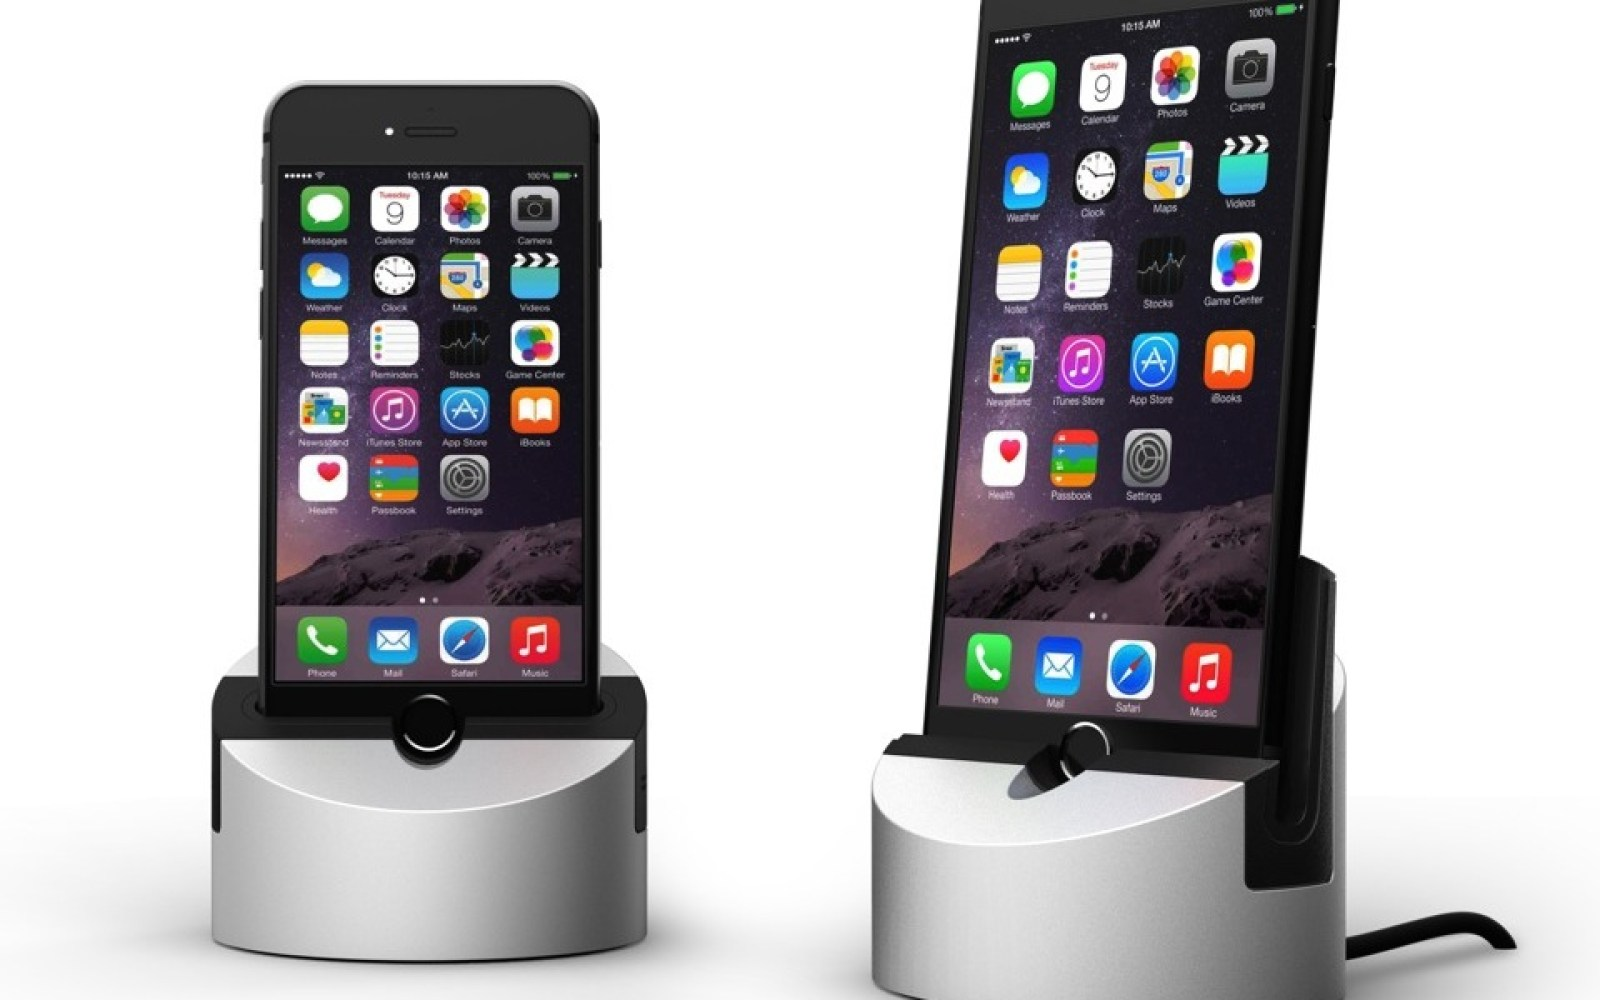 The best iPhone 6 and 6 Plus docks from Twelve South, Belkin, Henge Docks and more